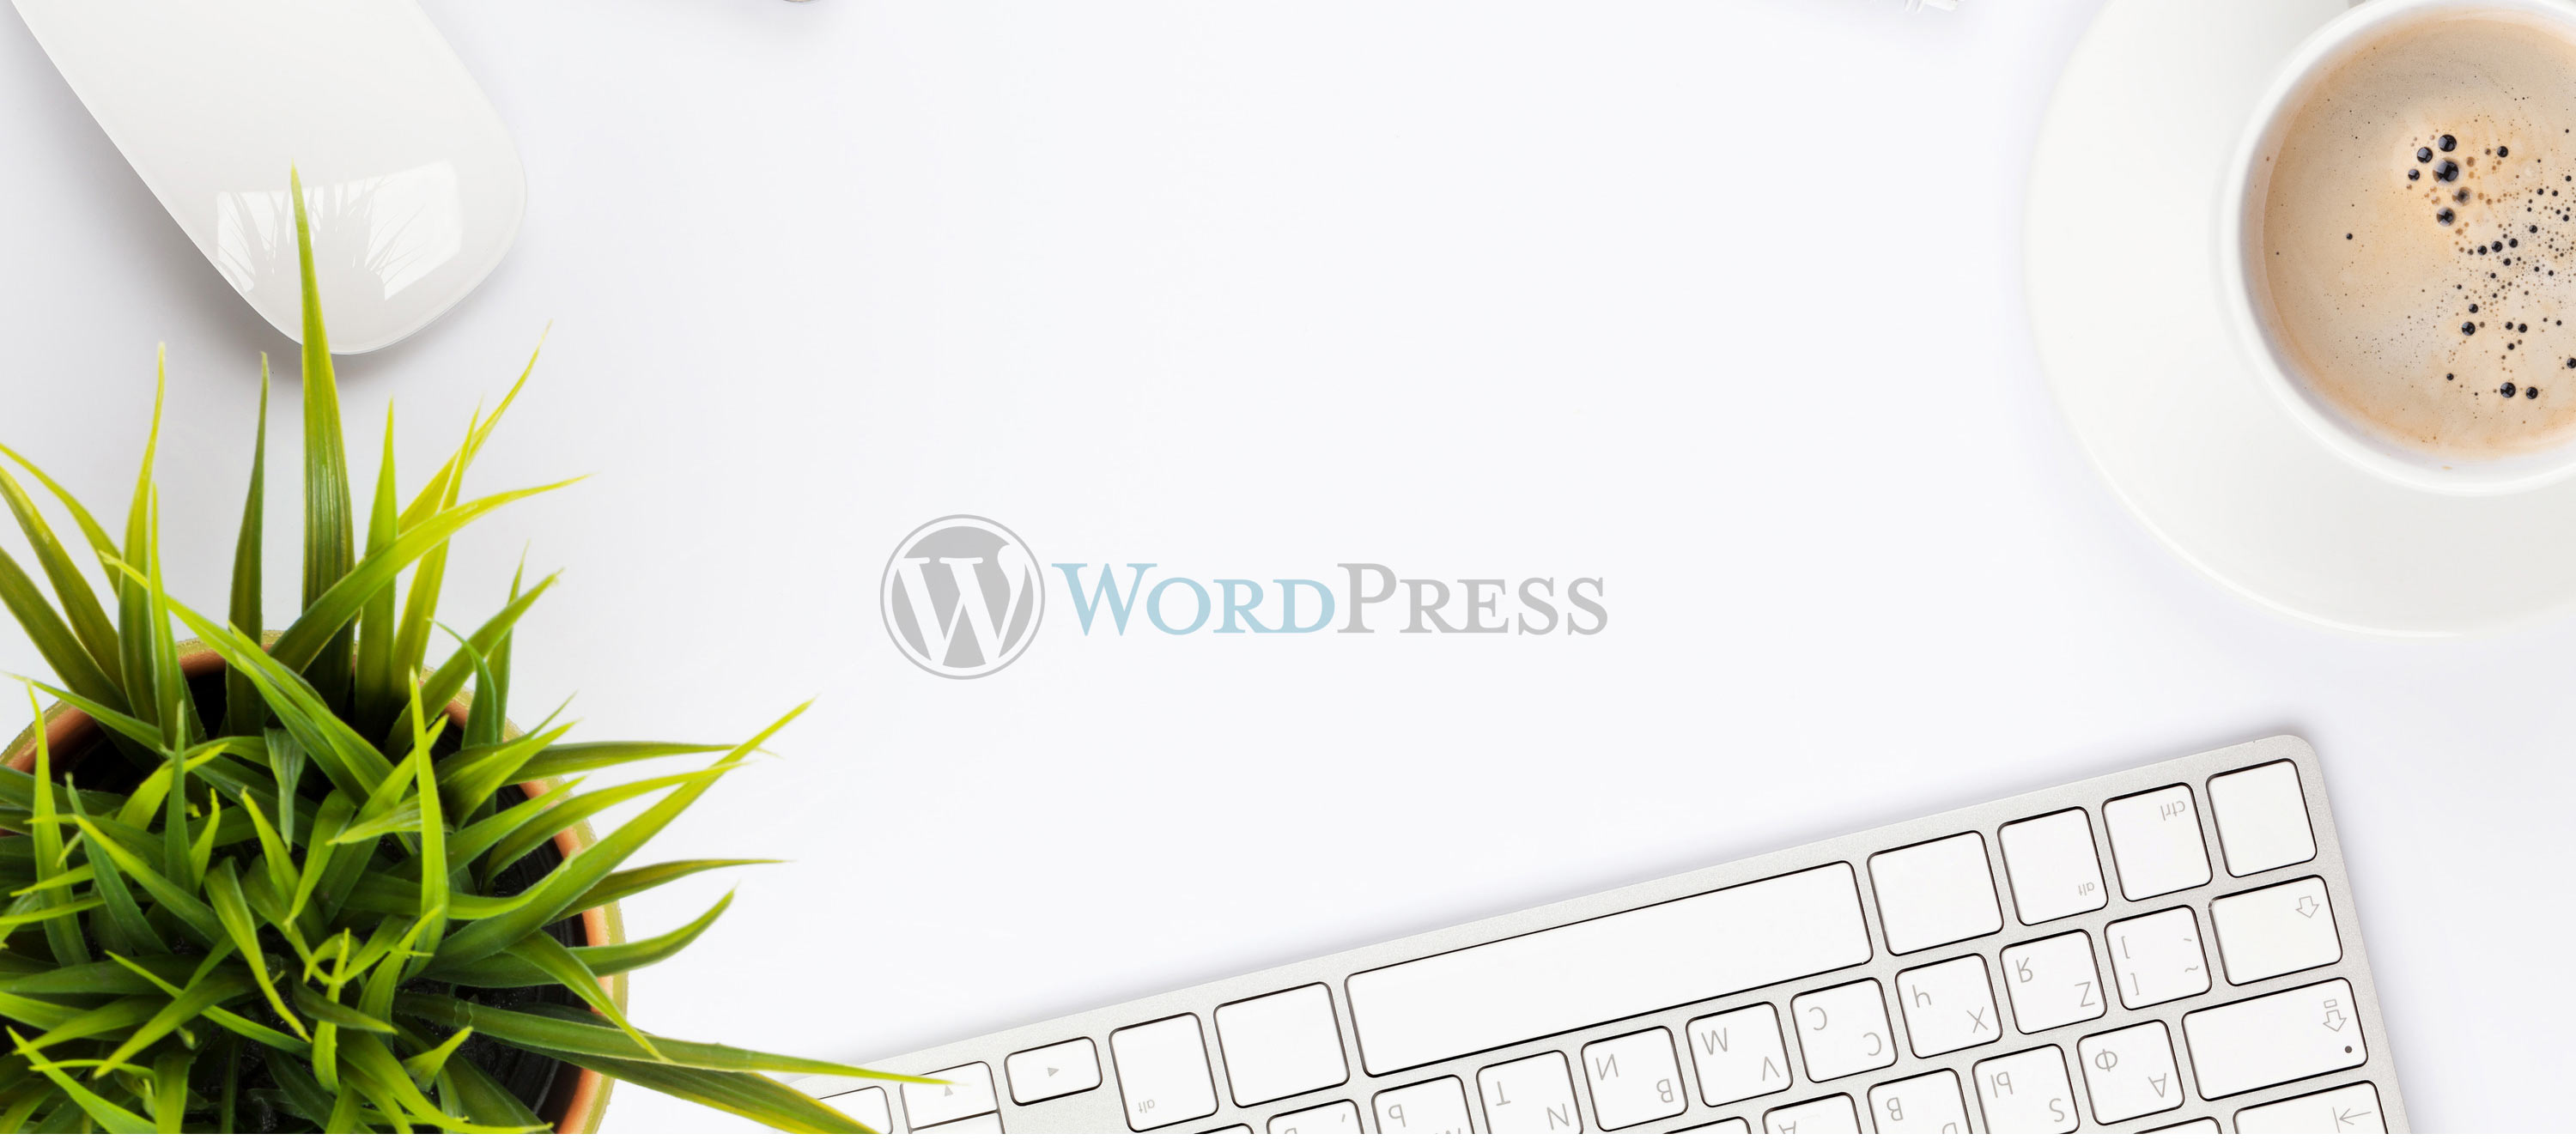 header-word-press-website-services-and-design